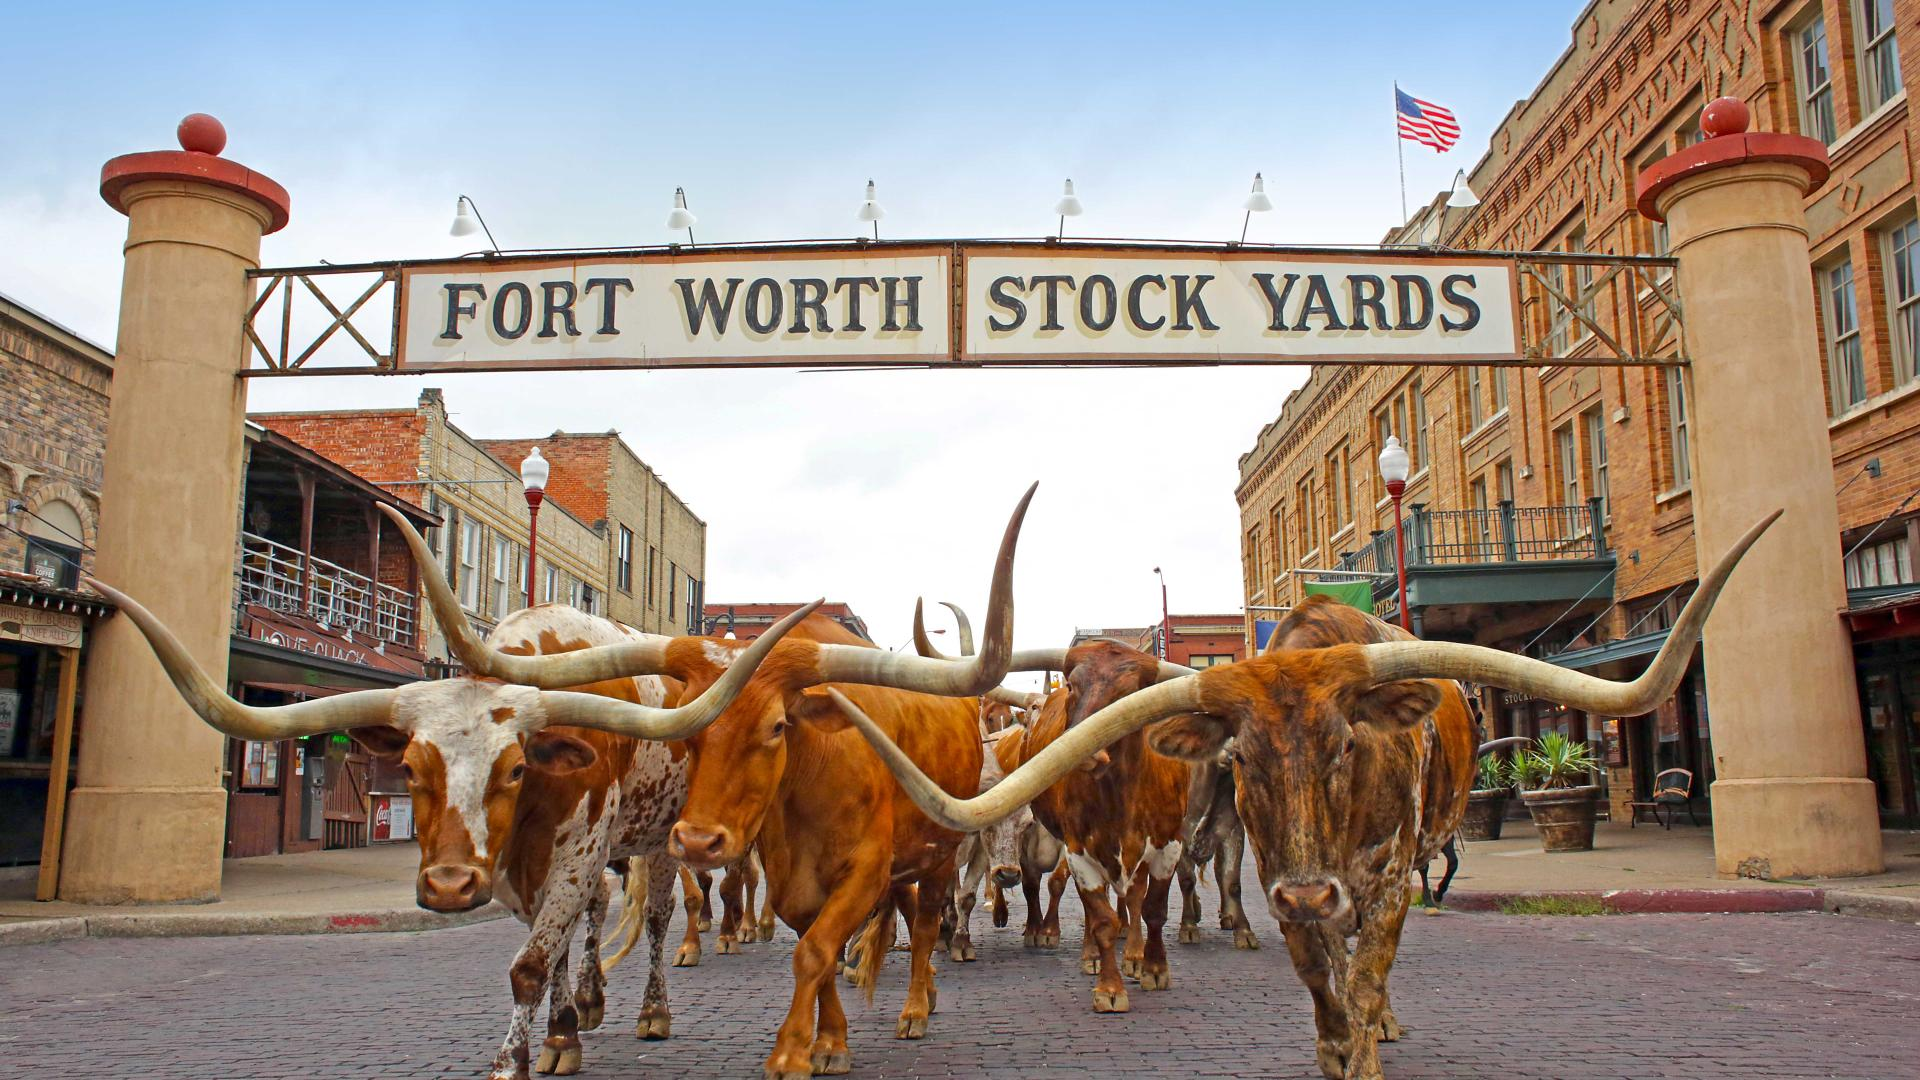 The Fort Worth Cattle Drive